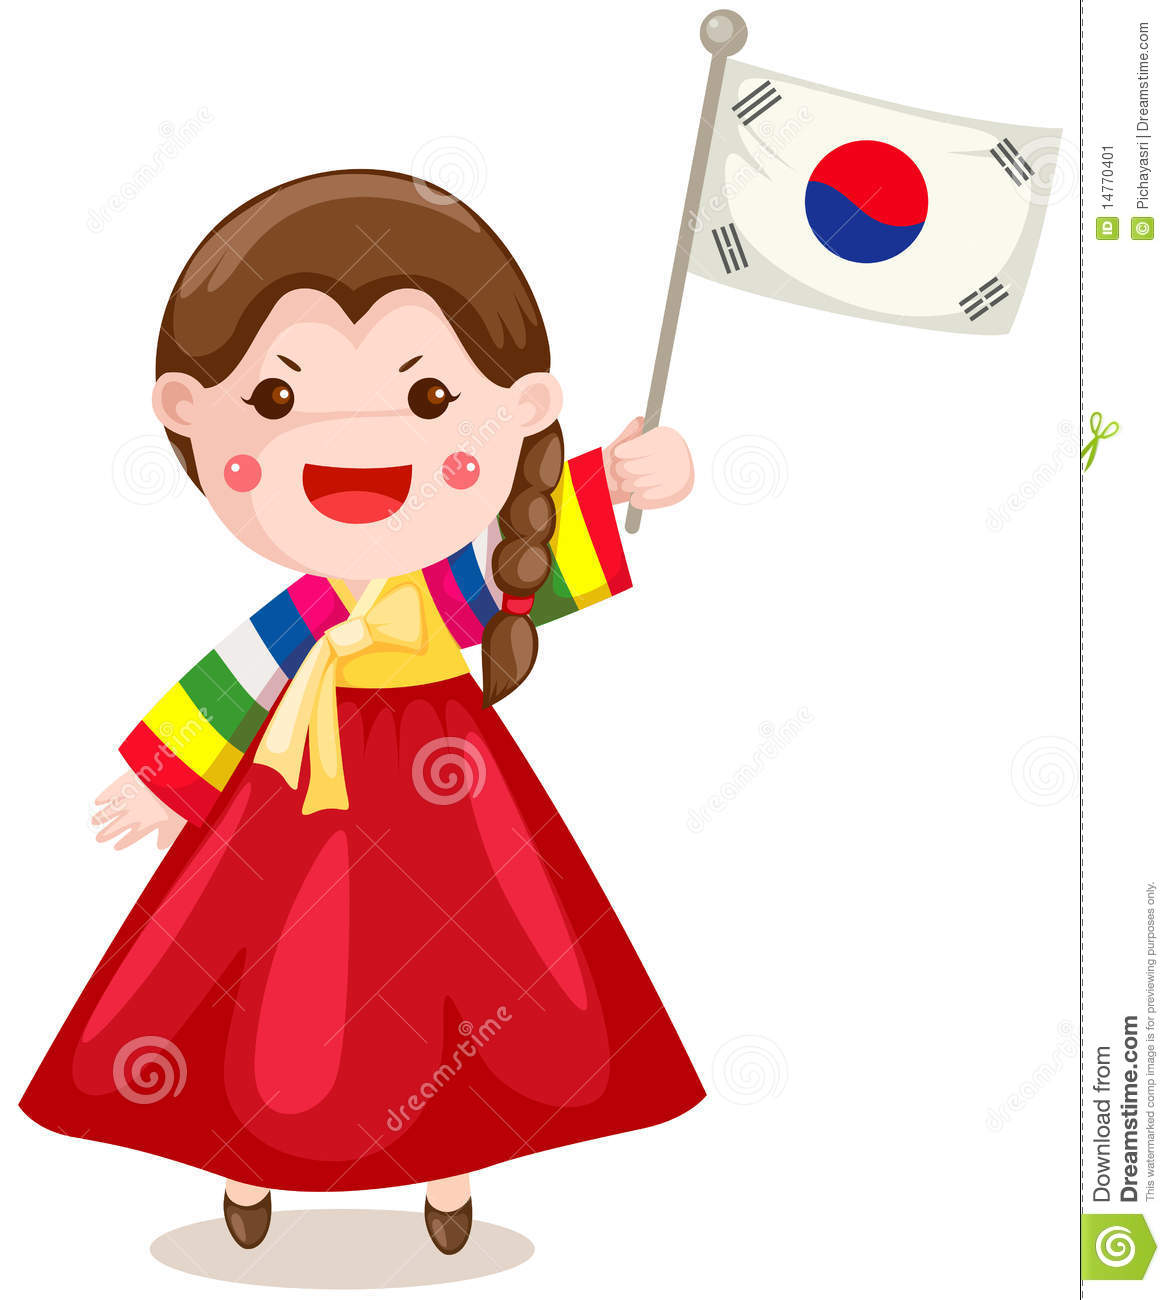 Korea clipart Free Clipart korean%20clipart Korea Images